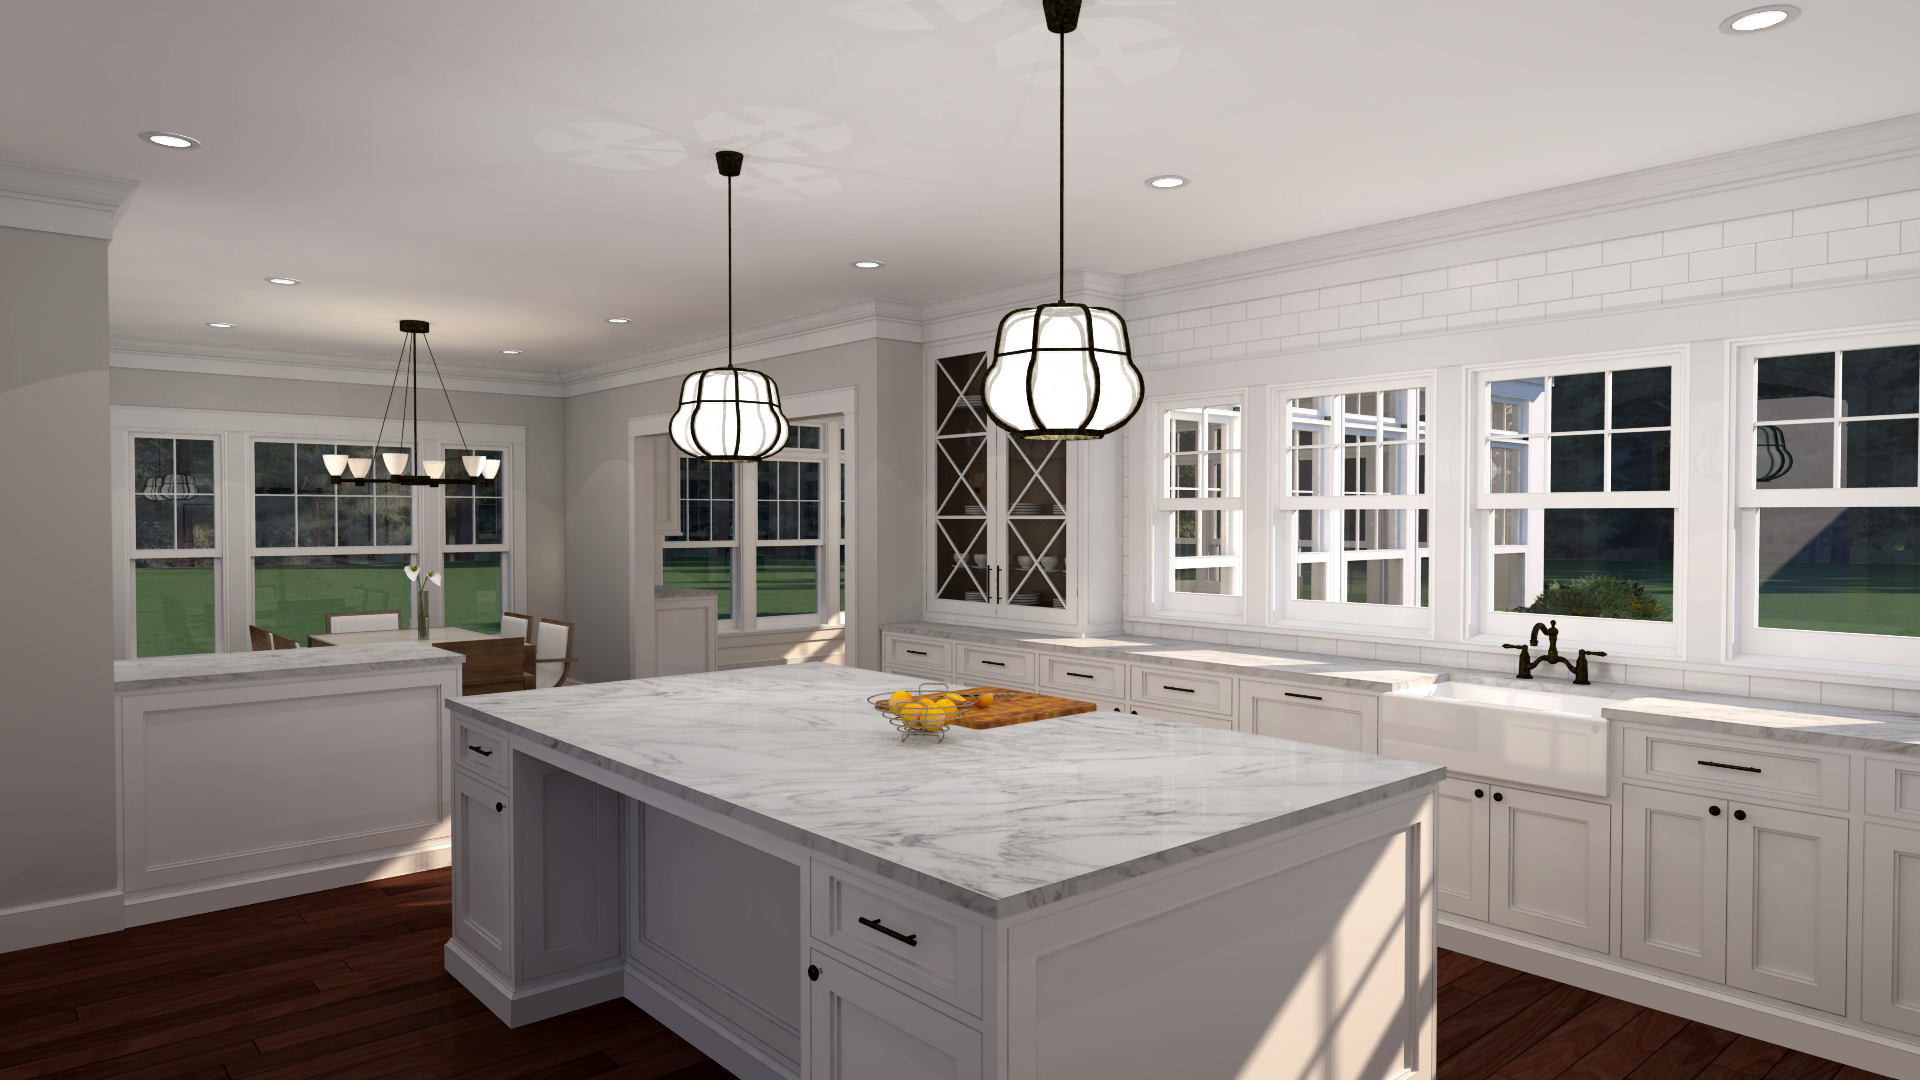 Photo-Realistic Rendering of new Kitchen